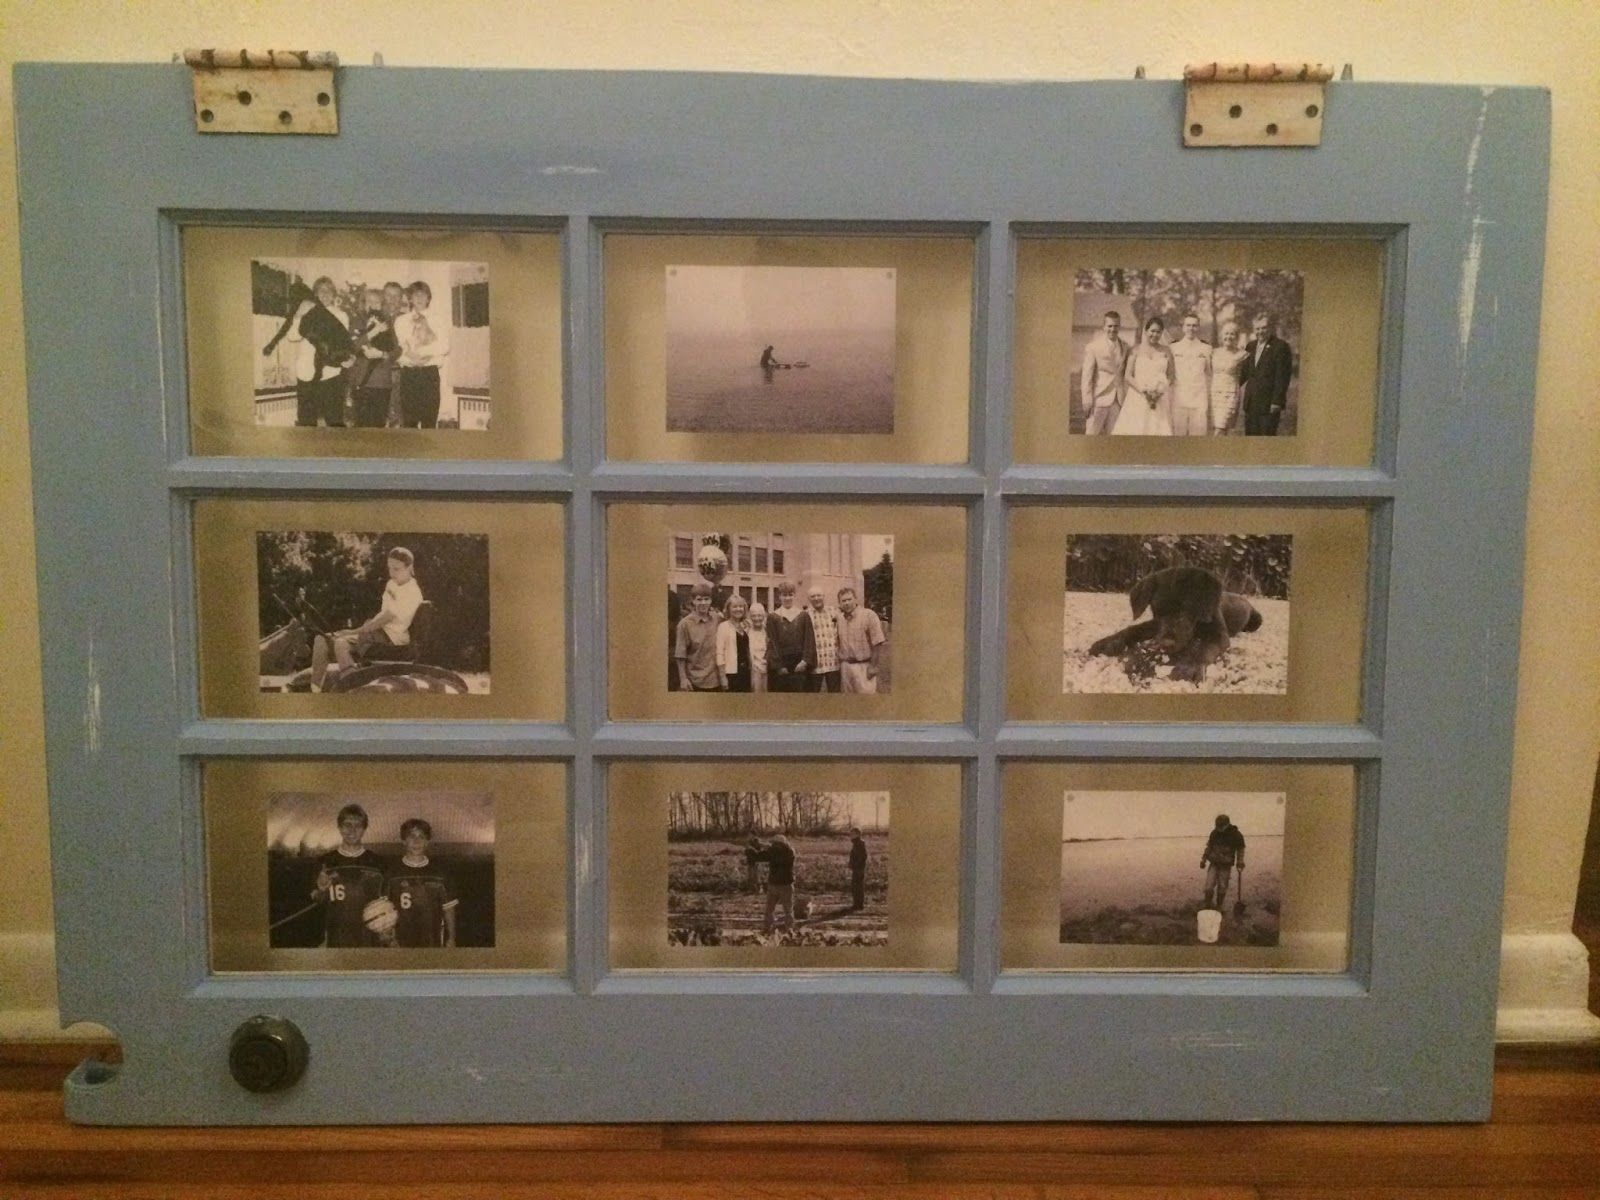 Repurpose an old door into an antique picture frame diy recycle repurpose an old door into an antique picture frame the teal treehouse treasure hunting in miami jeuxipadfo Choice Image